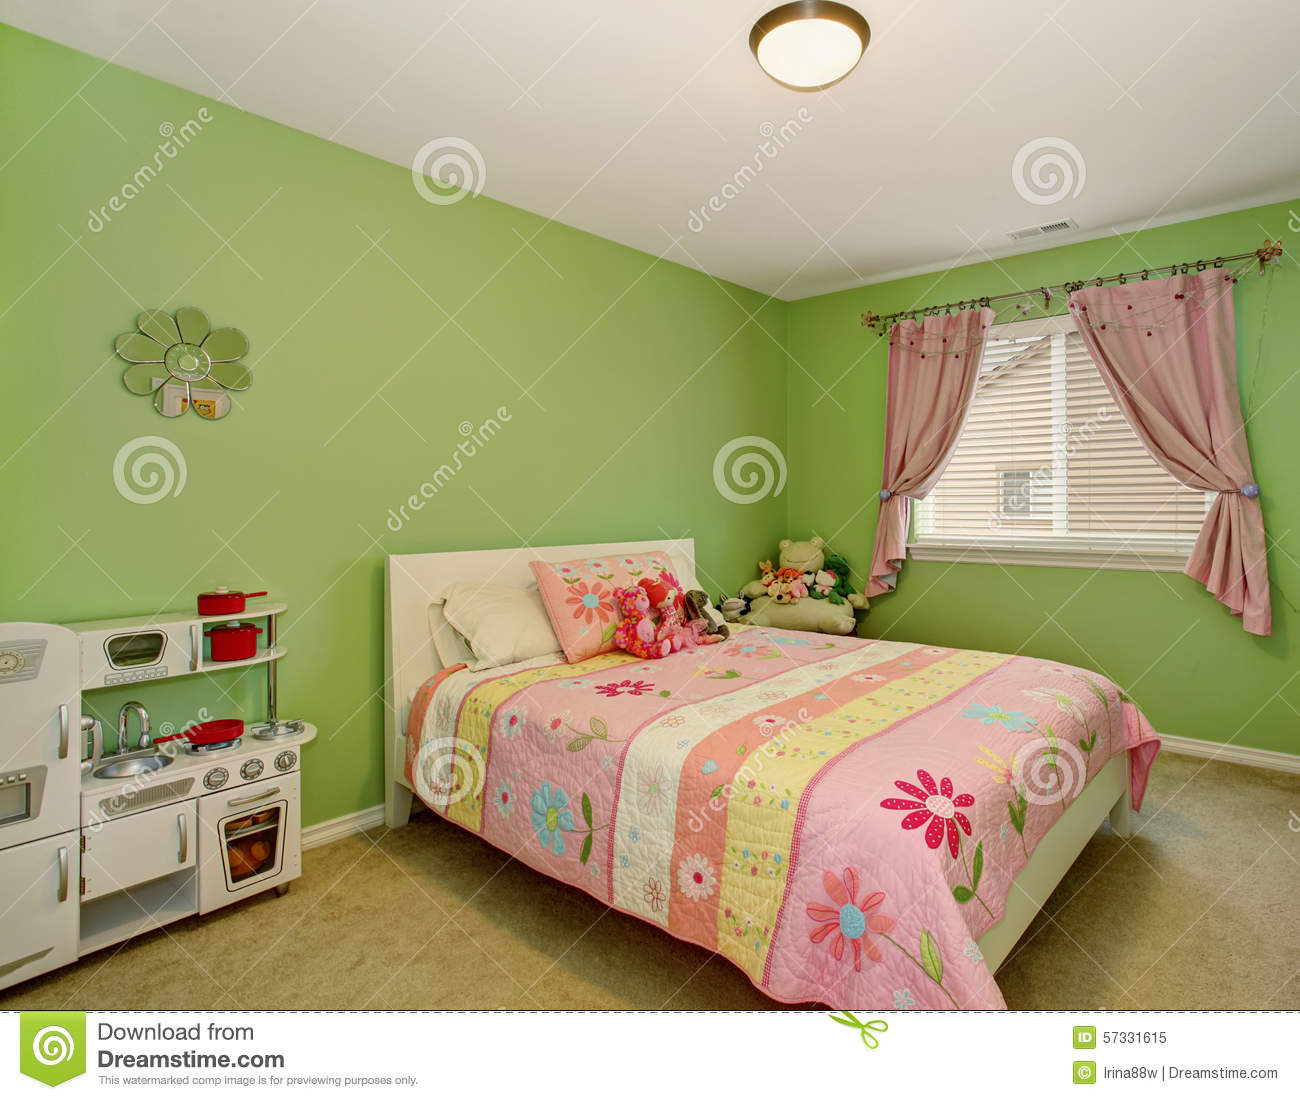 Perfect Girls Bedroom With Green Walls. Stock Image